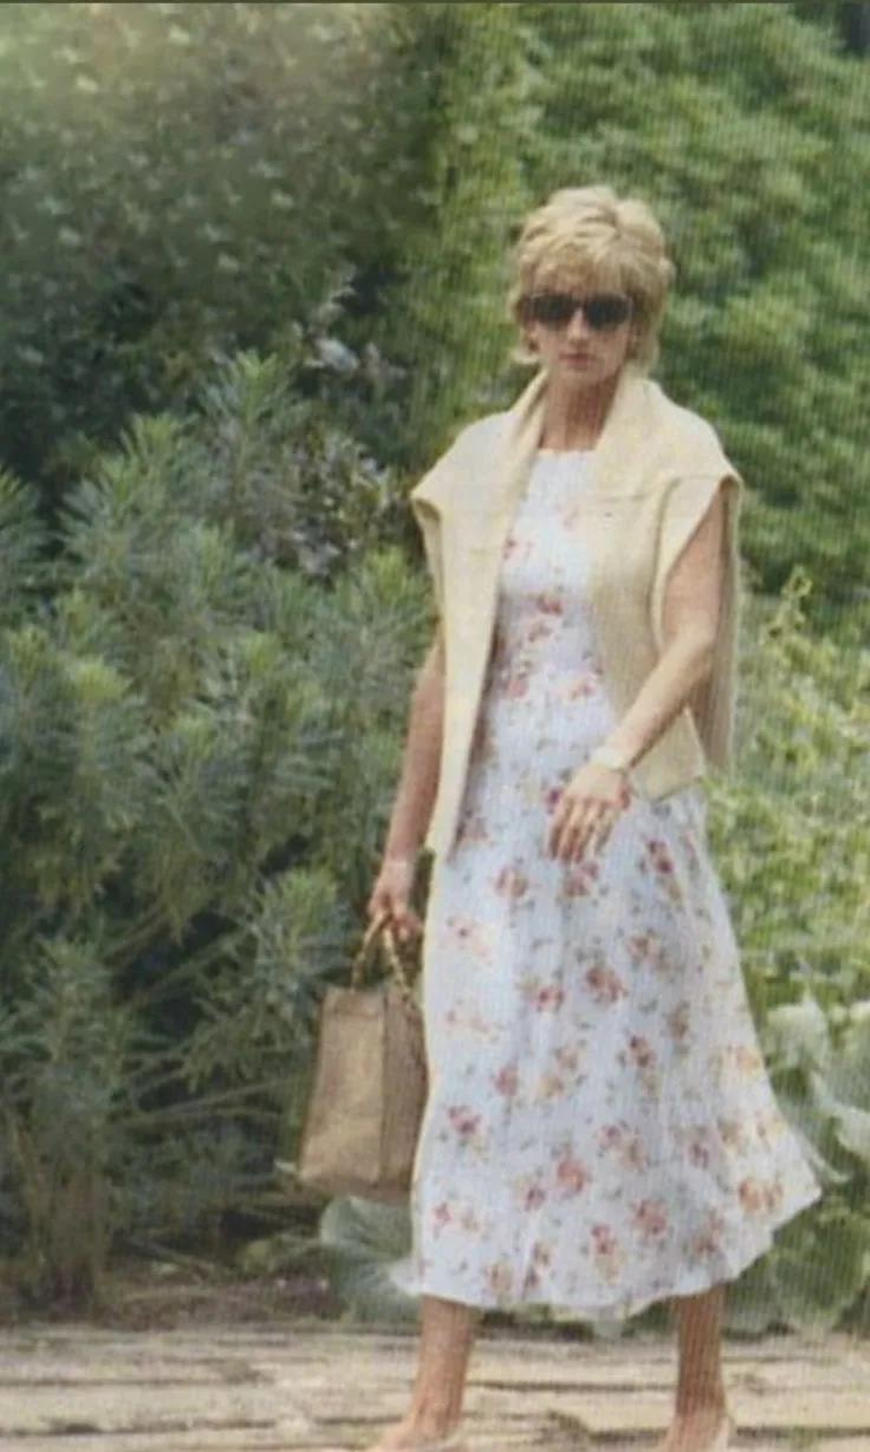 a-cardigan-and-a-floral-dress